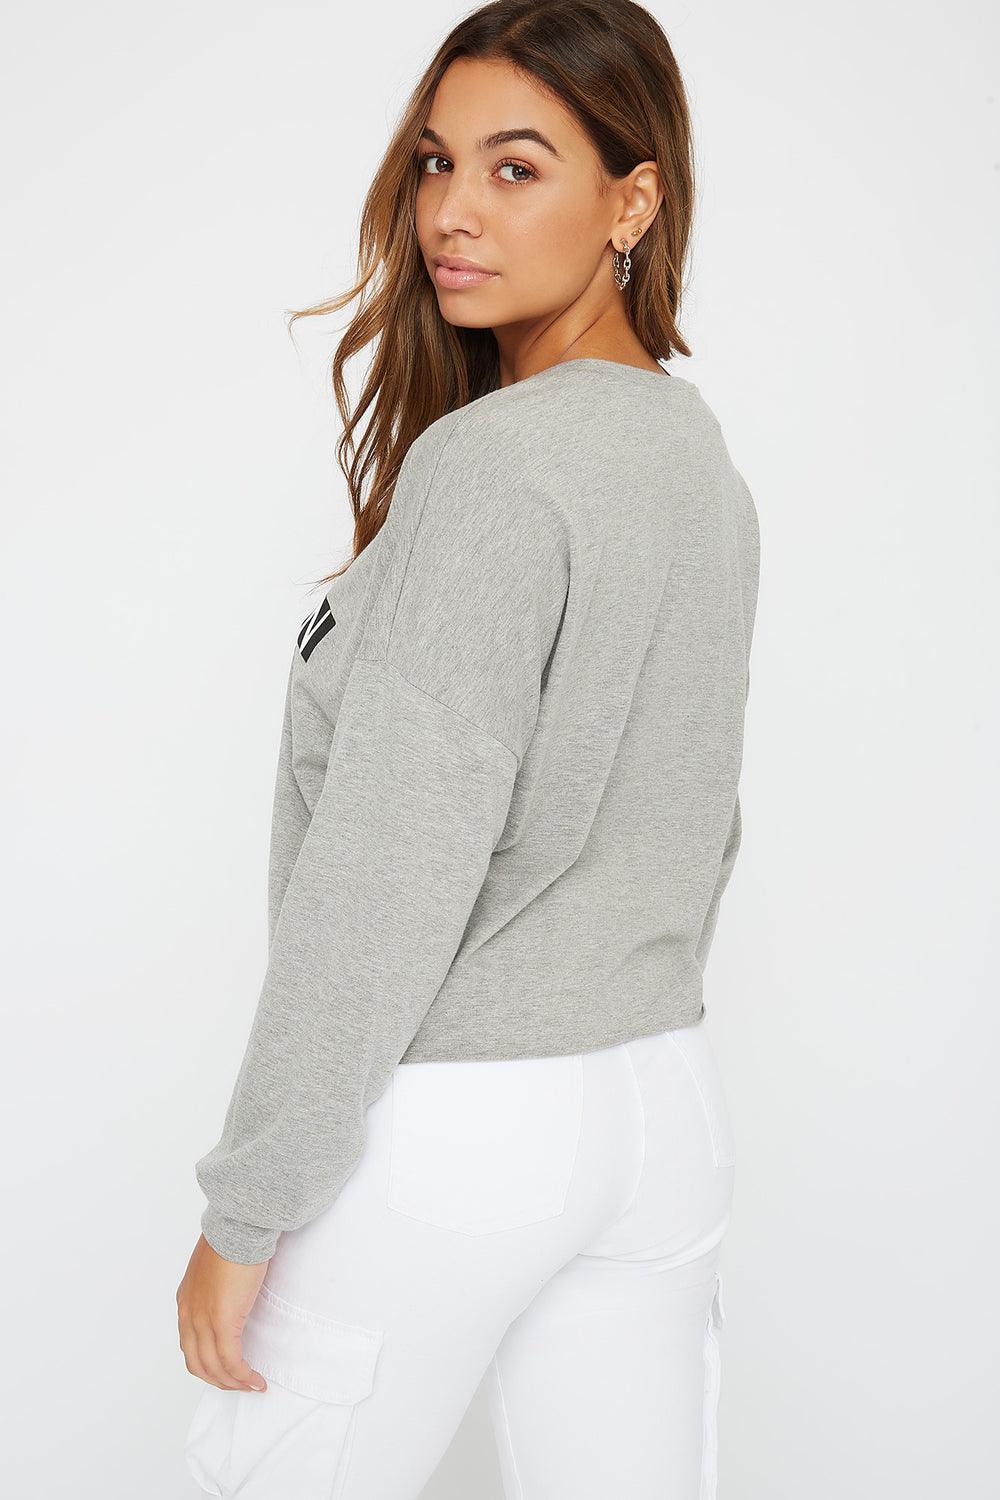 Oversized Graphic Long Sleeve Heather Grey